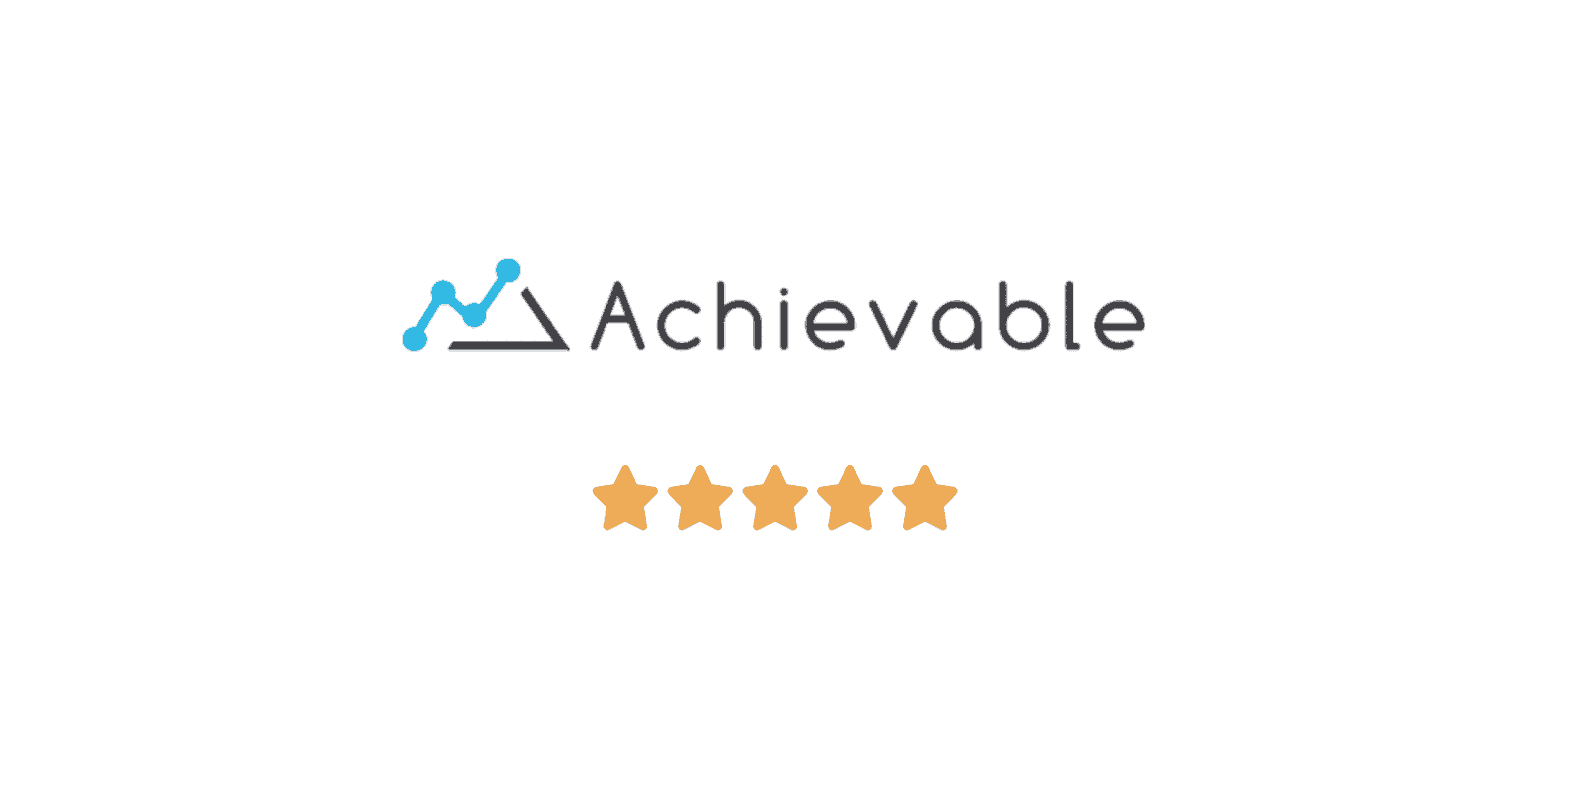 achievable gre logo with star rating